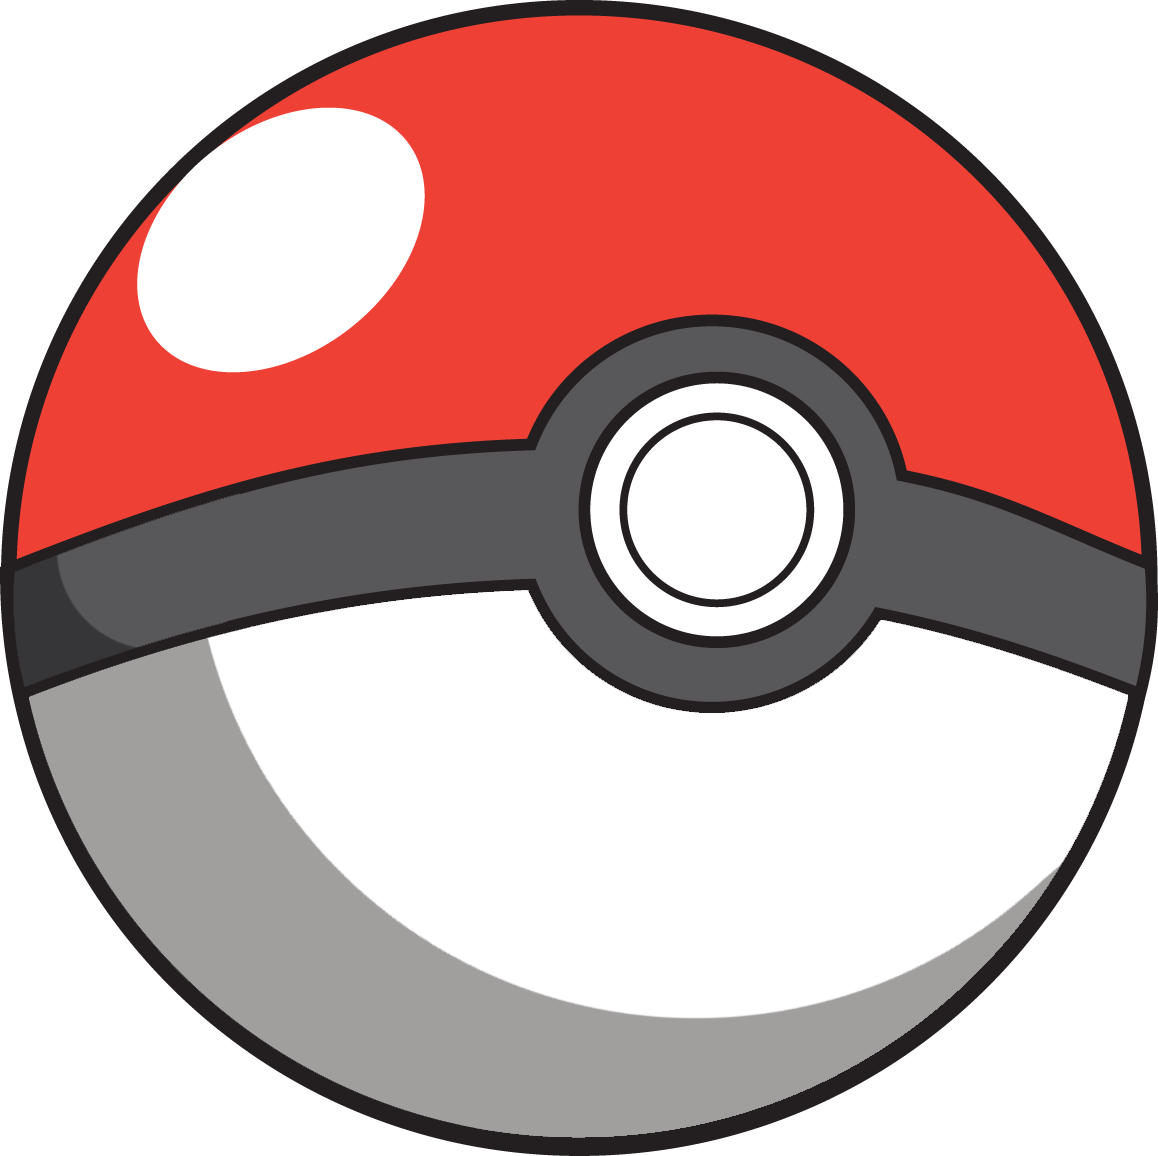 File pokebola png wikimedia. Pokeball clipart open